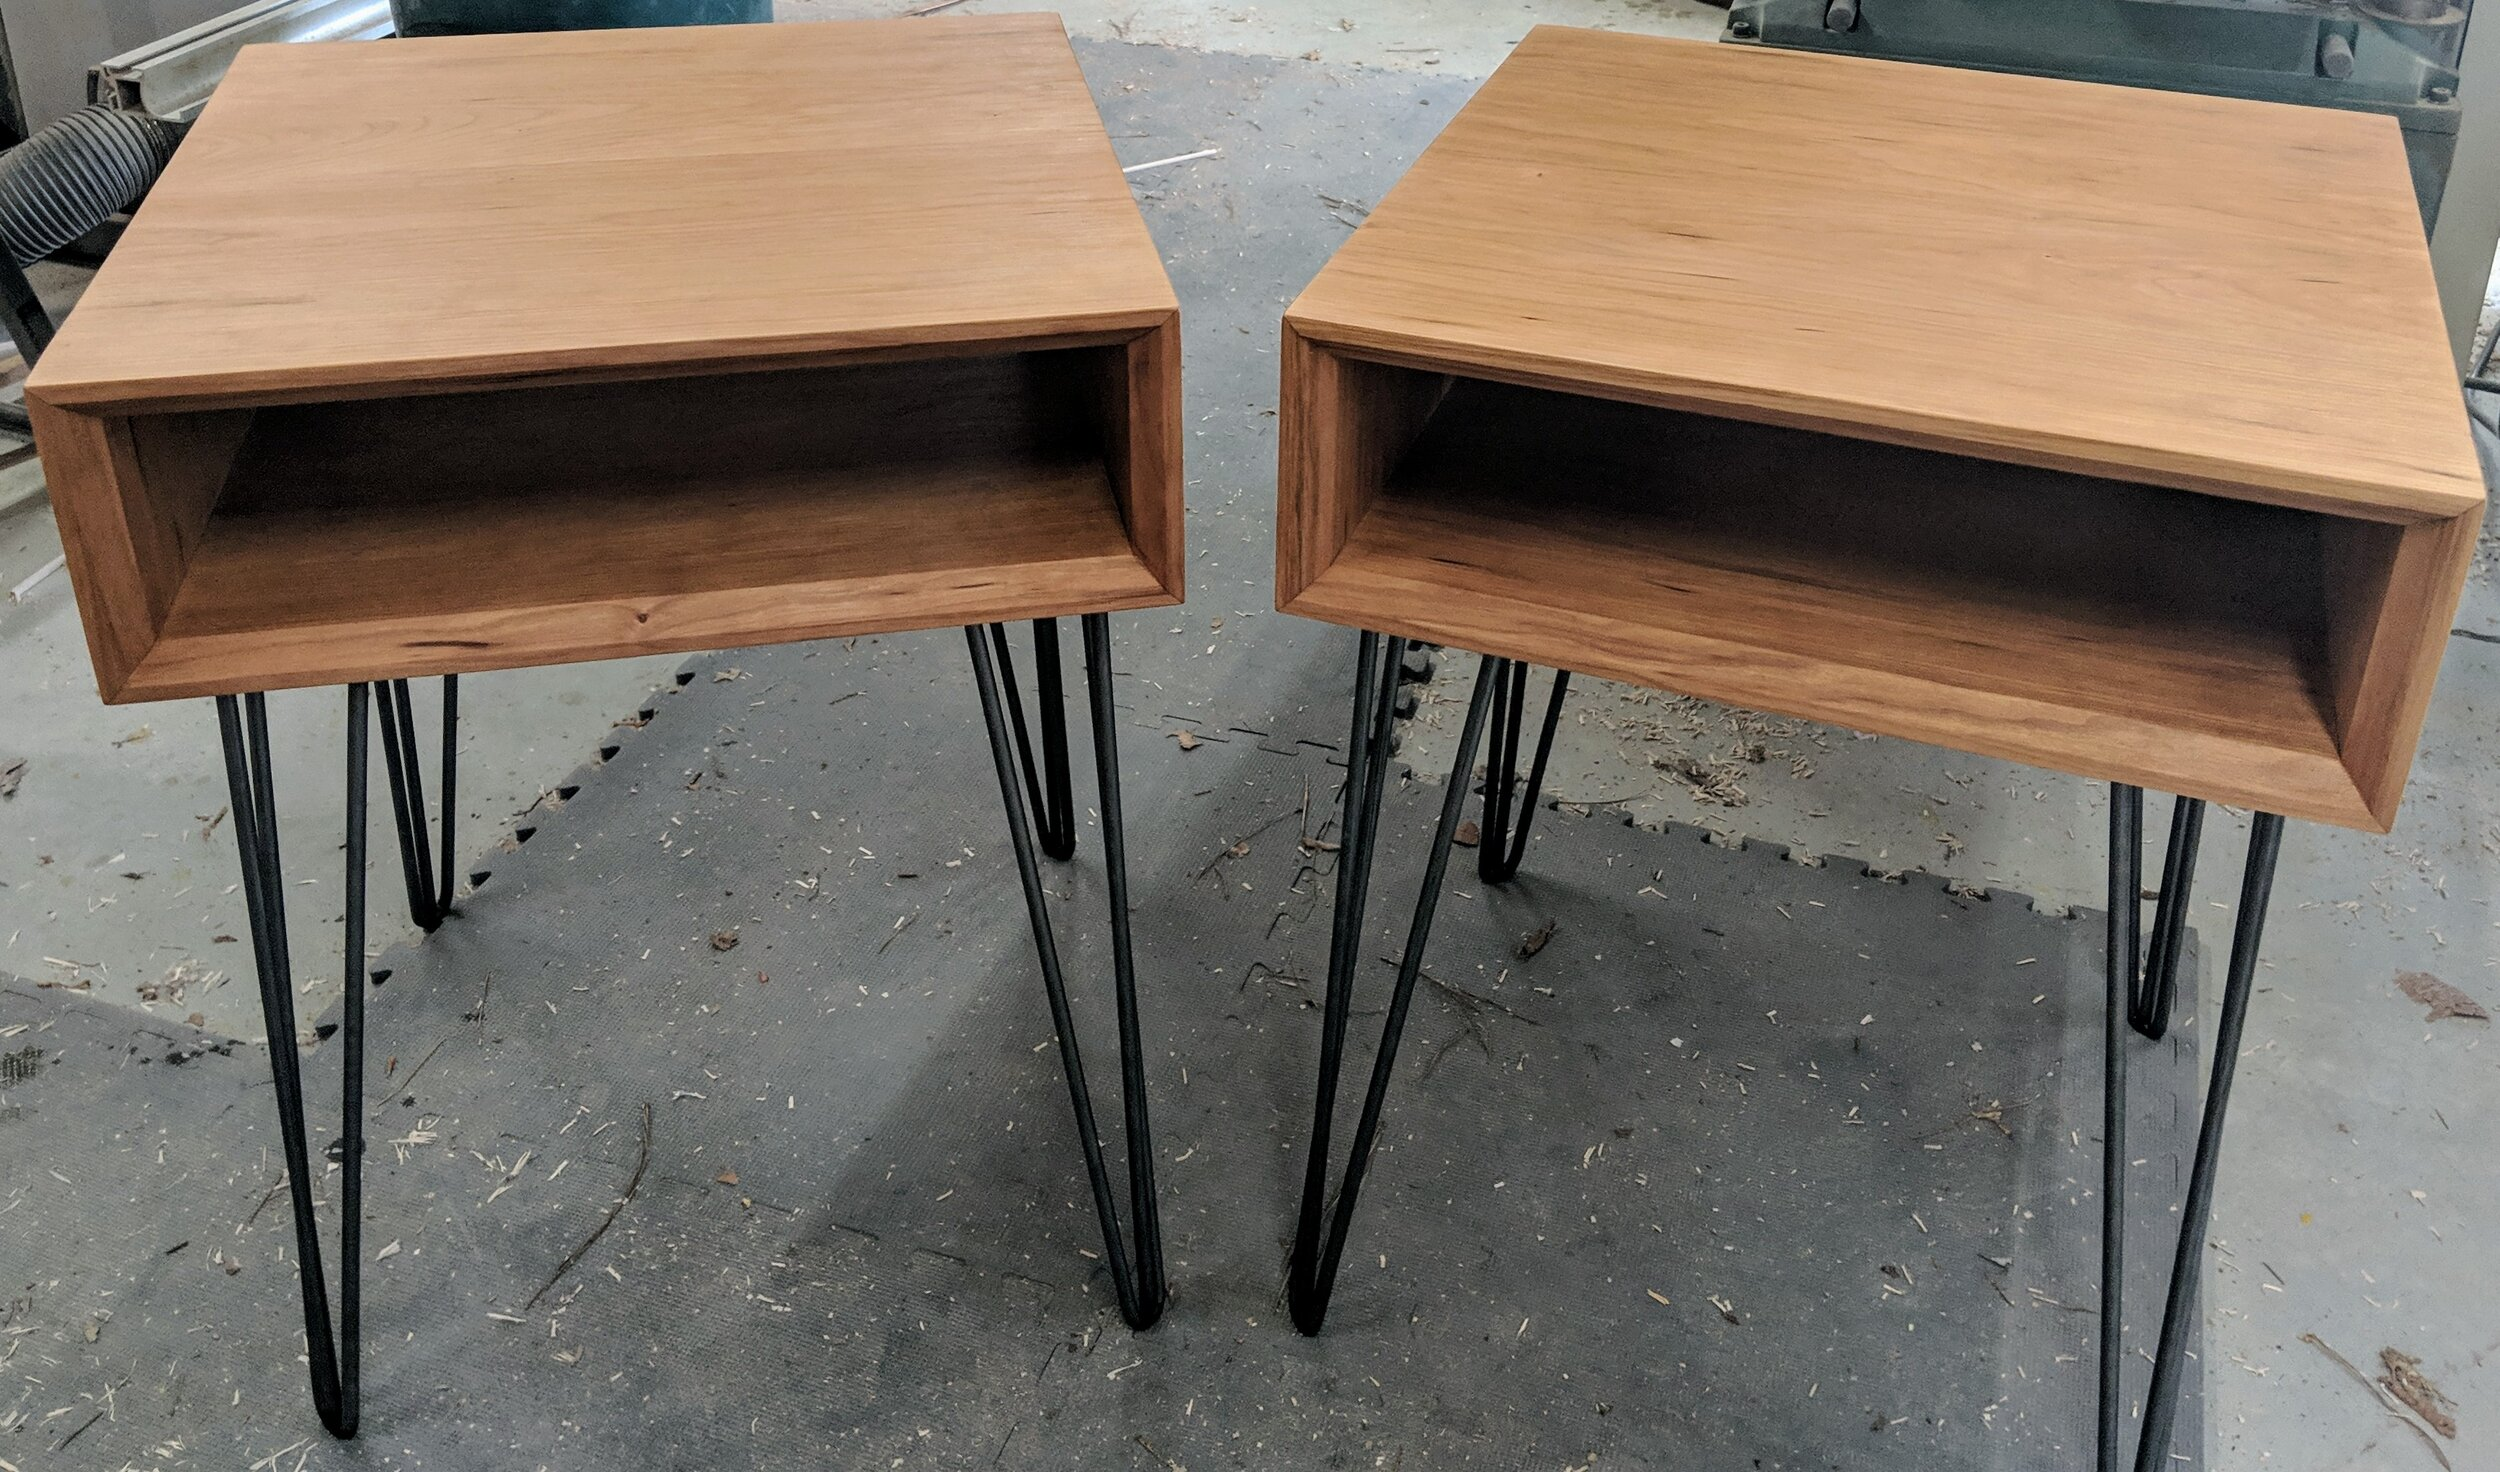 Picture of: Matching Mid Century Modern Bedside Tables Vanvleet Woodworking